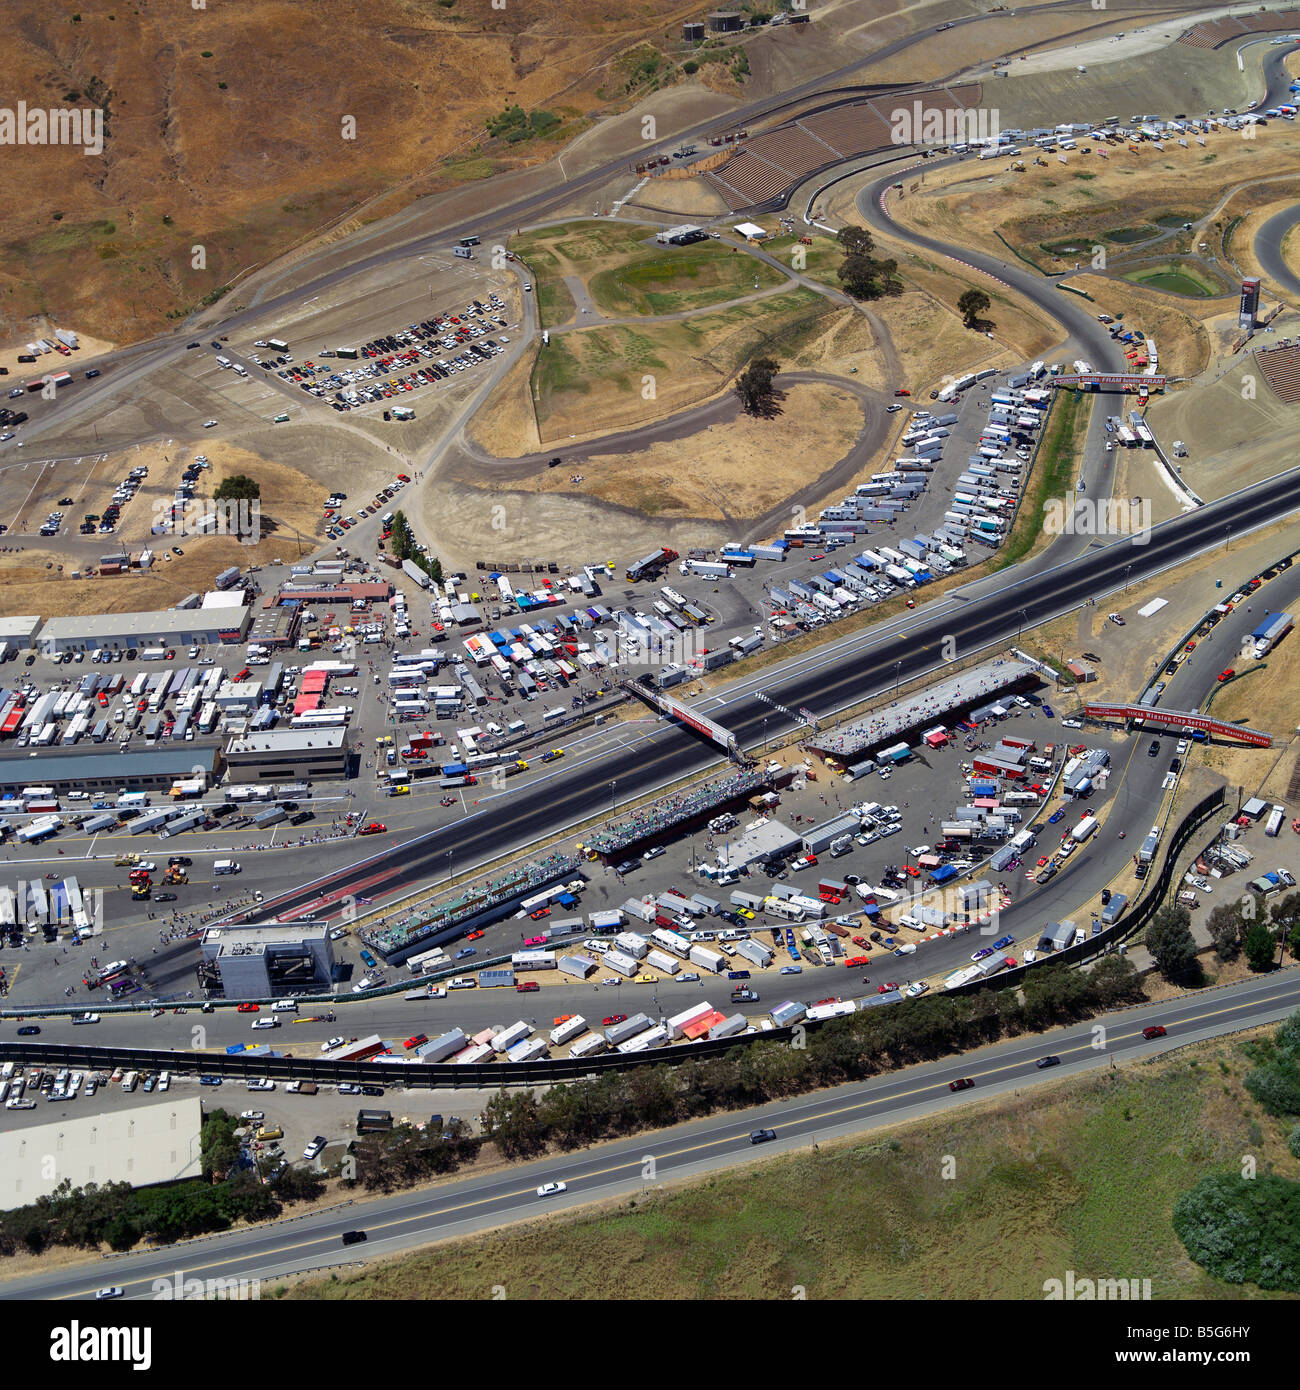 Aerial view above winston cup nascar racing at infineon raceway sears point automobile race